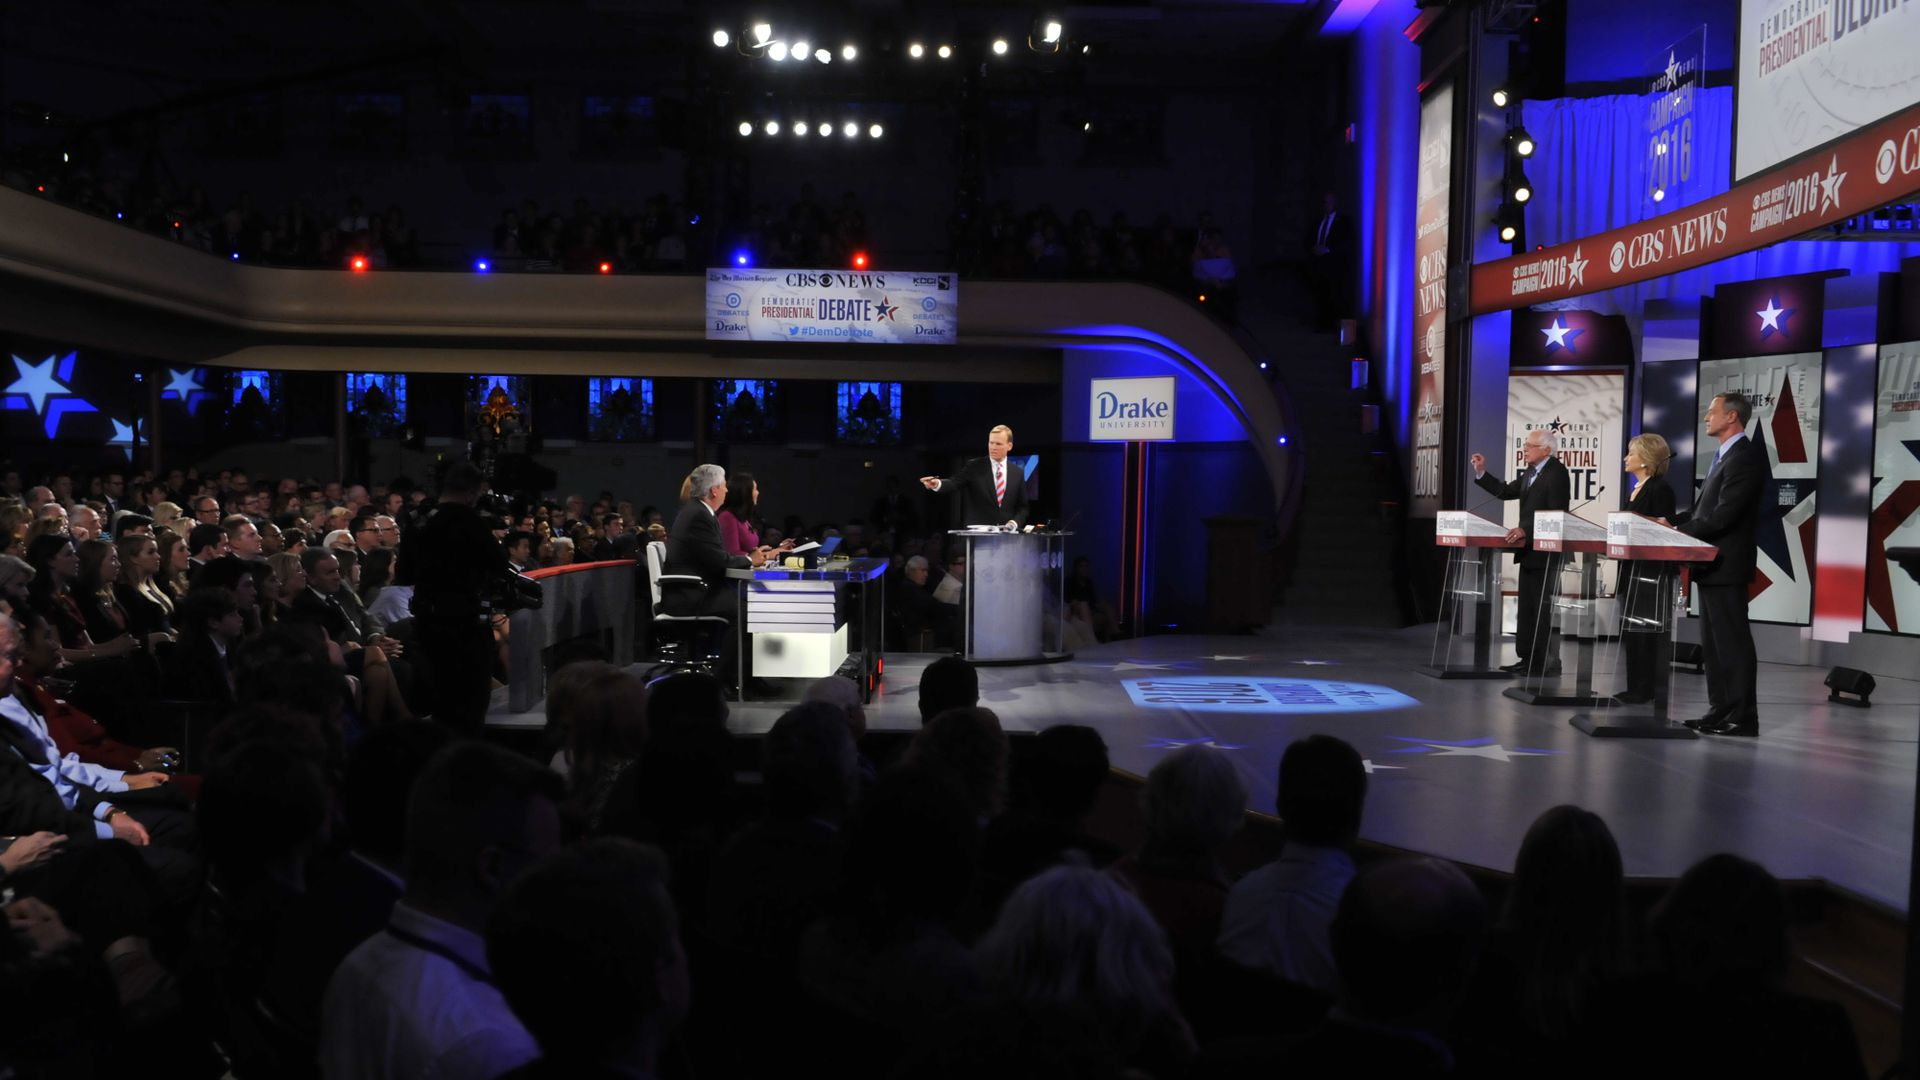 John Dickerson moderates Democratic primary debate in 2015.